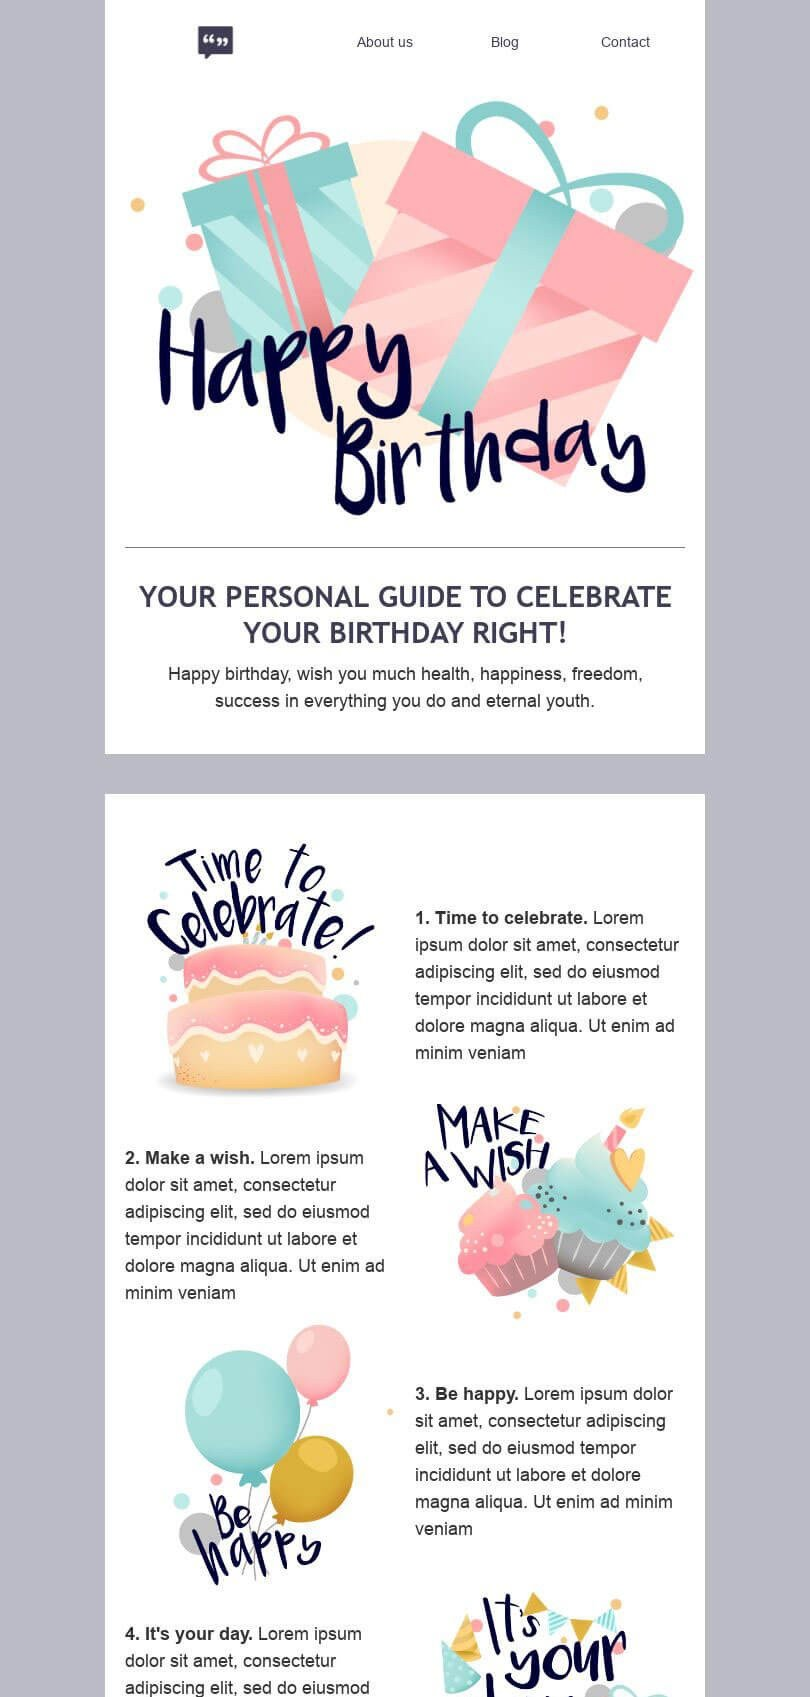 Birthday Email Template «Your holiday guide» for Publications & Blogging industry desktop view